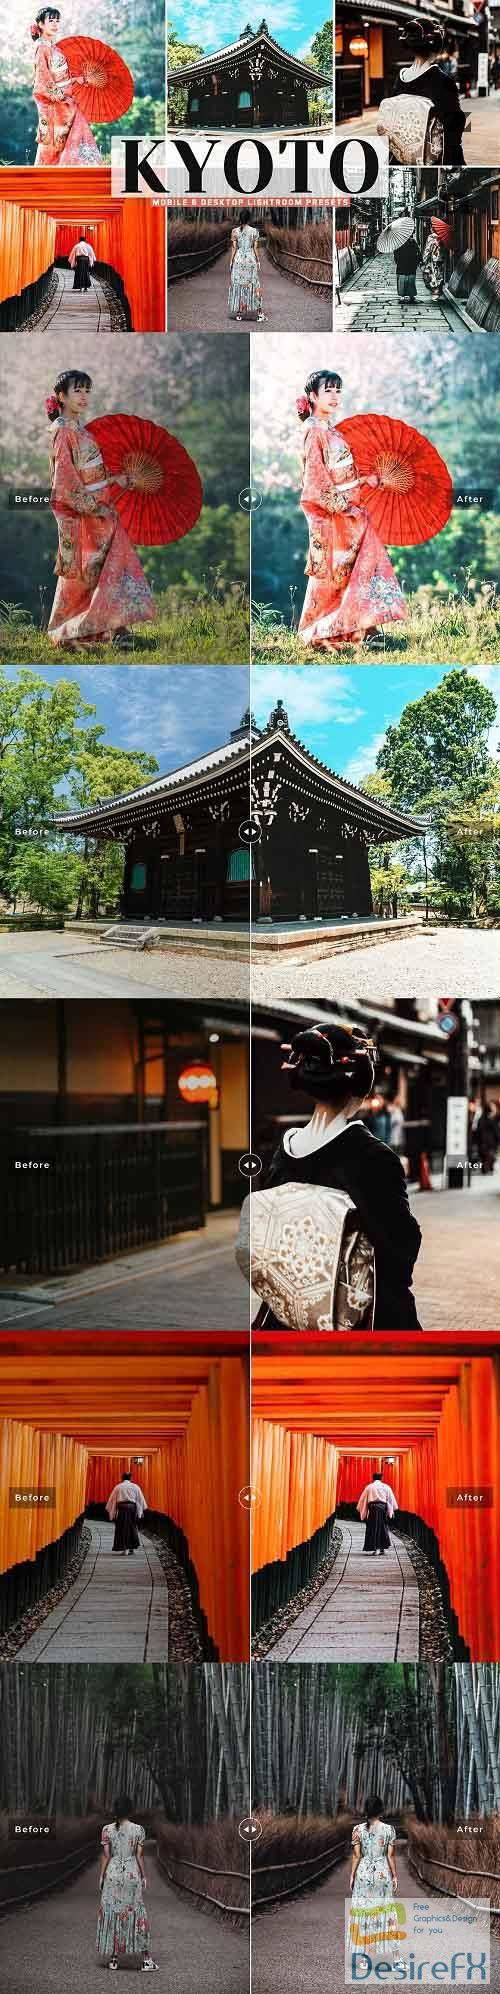 Kyoto Pro Lightroom Presets - 5539763 - Mobile & Desktop